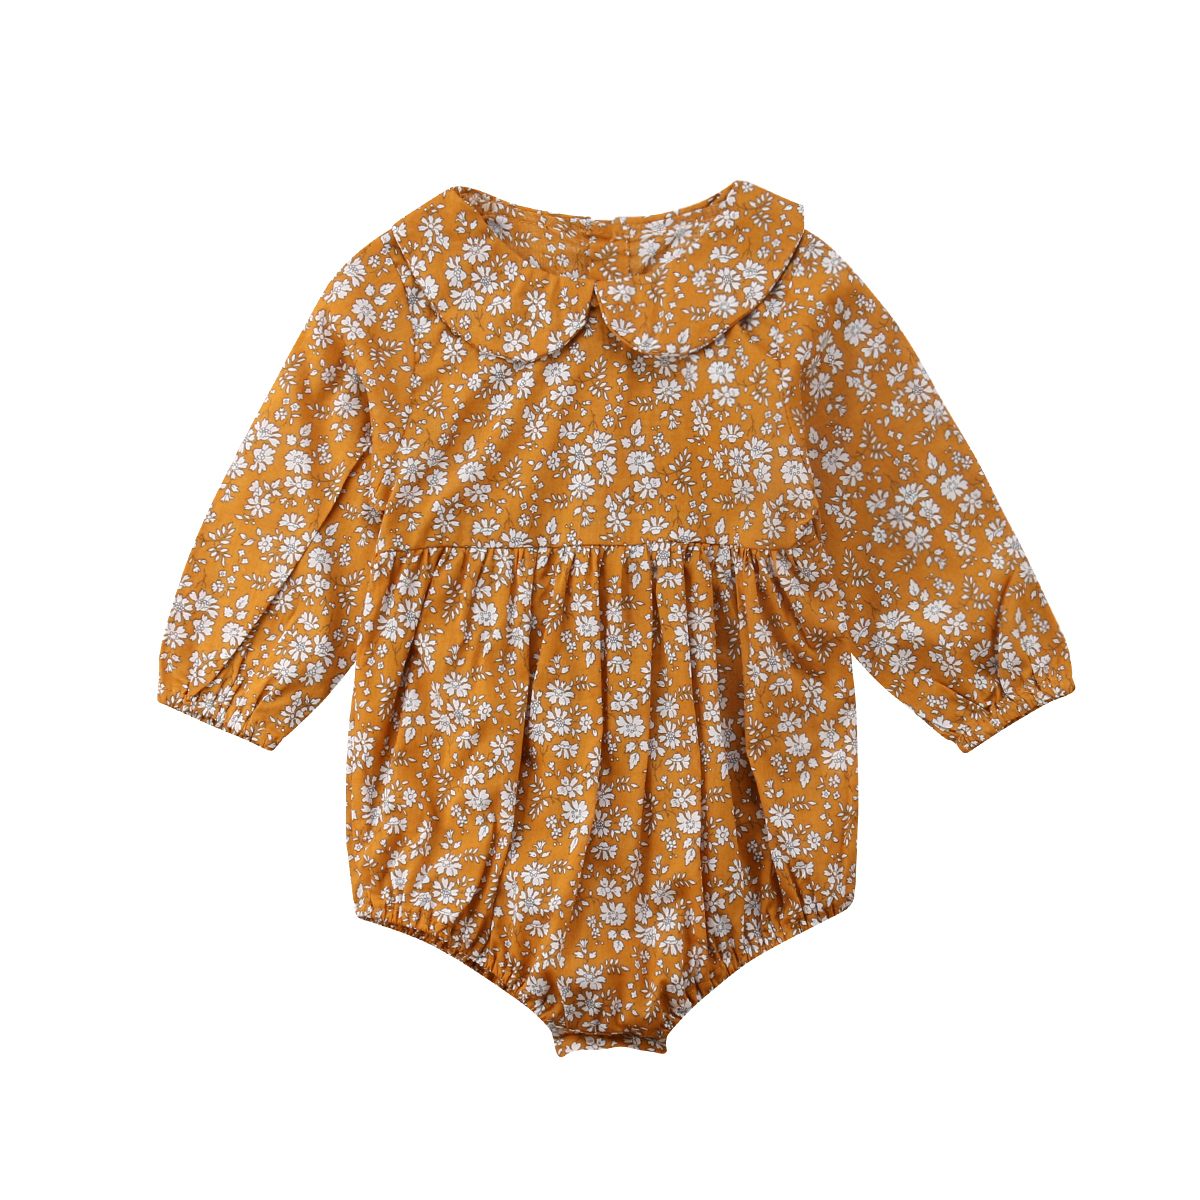 Flower Baby Girls Clothing Newborn Infant Baby Girls Floral Rompers Long Sleeve Autumn Clothes Jumpsuit Playsuit